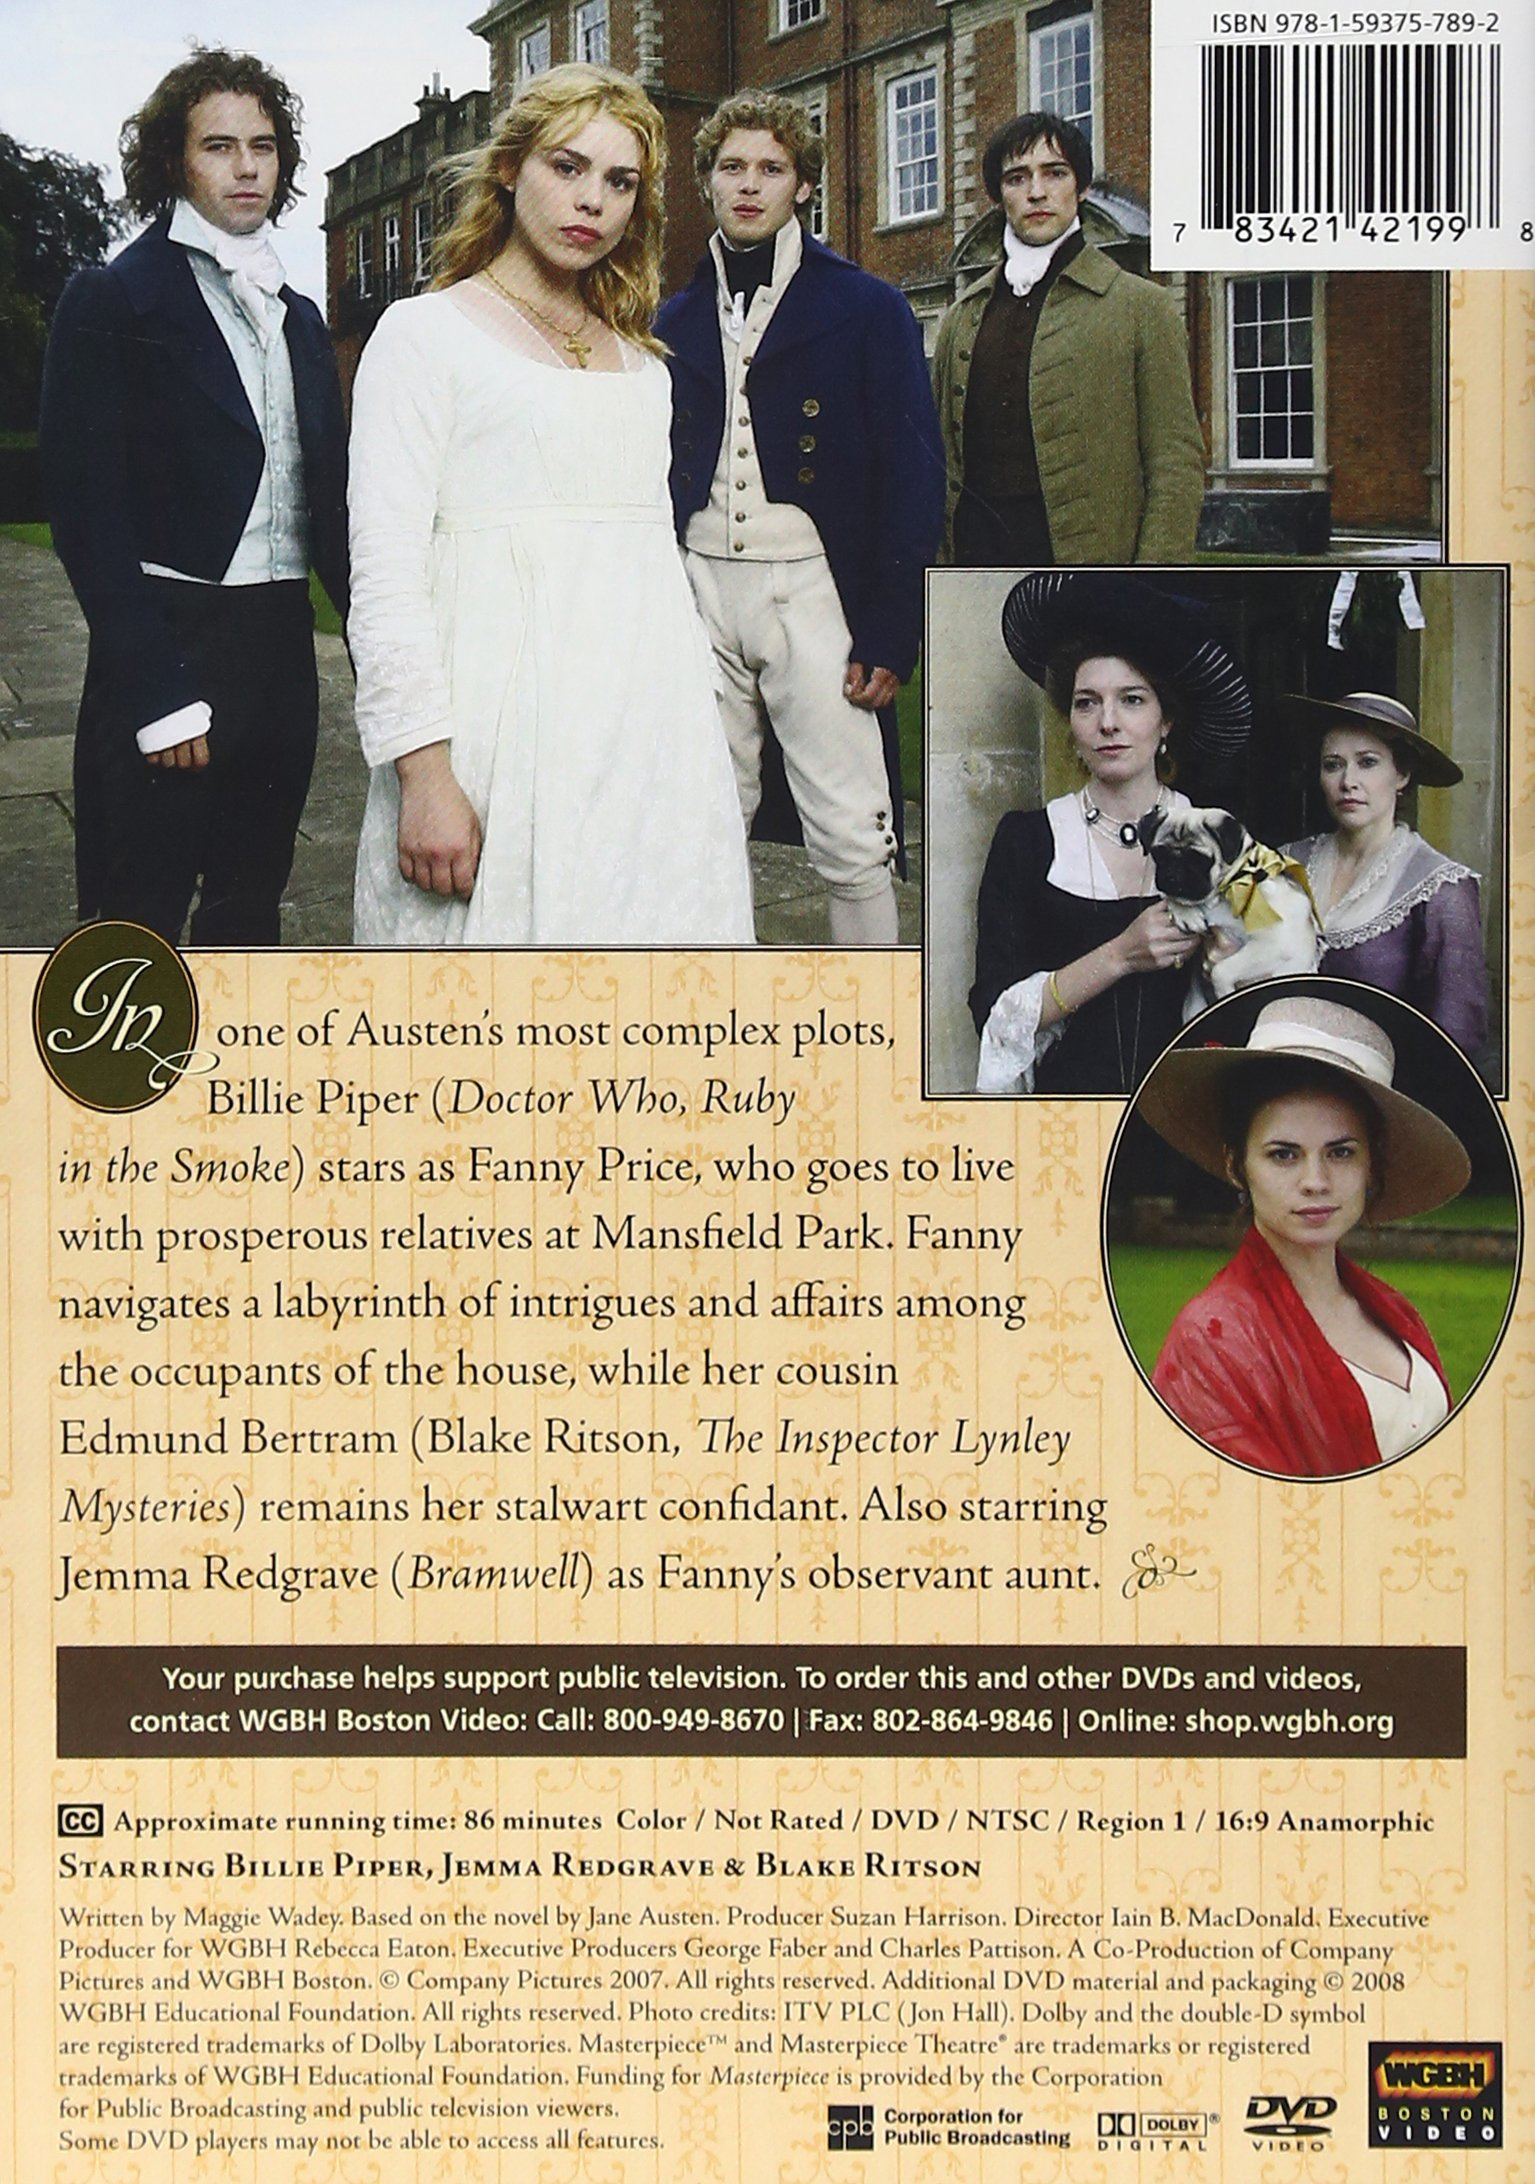 Masterpiece Theatre: Mansfield Park by Wgbh / Pbs